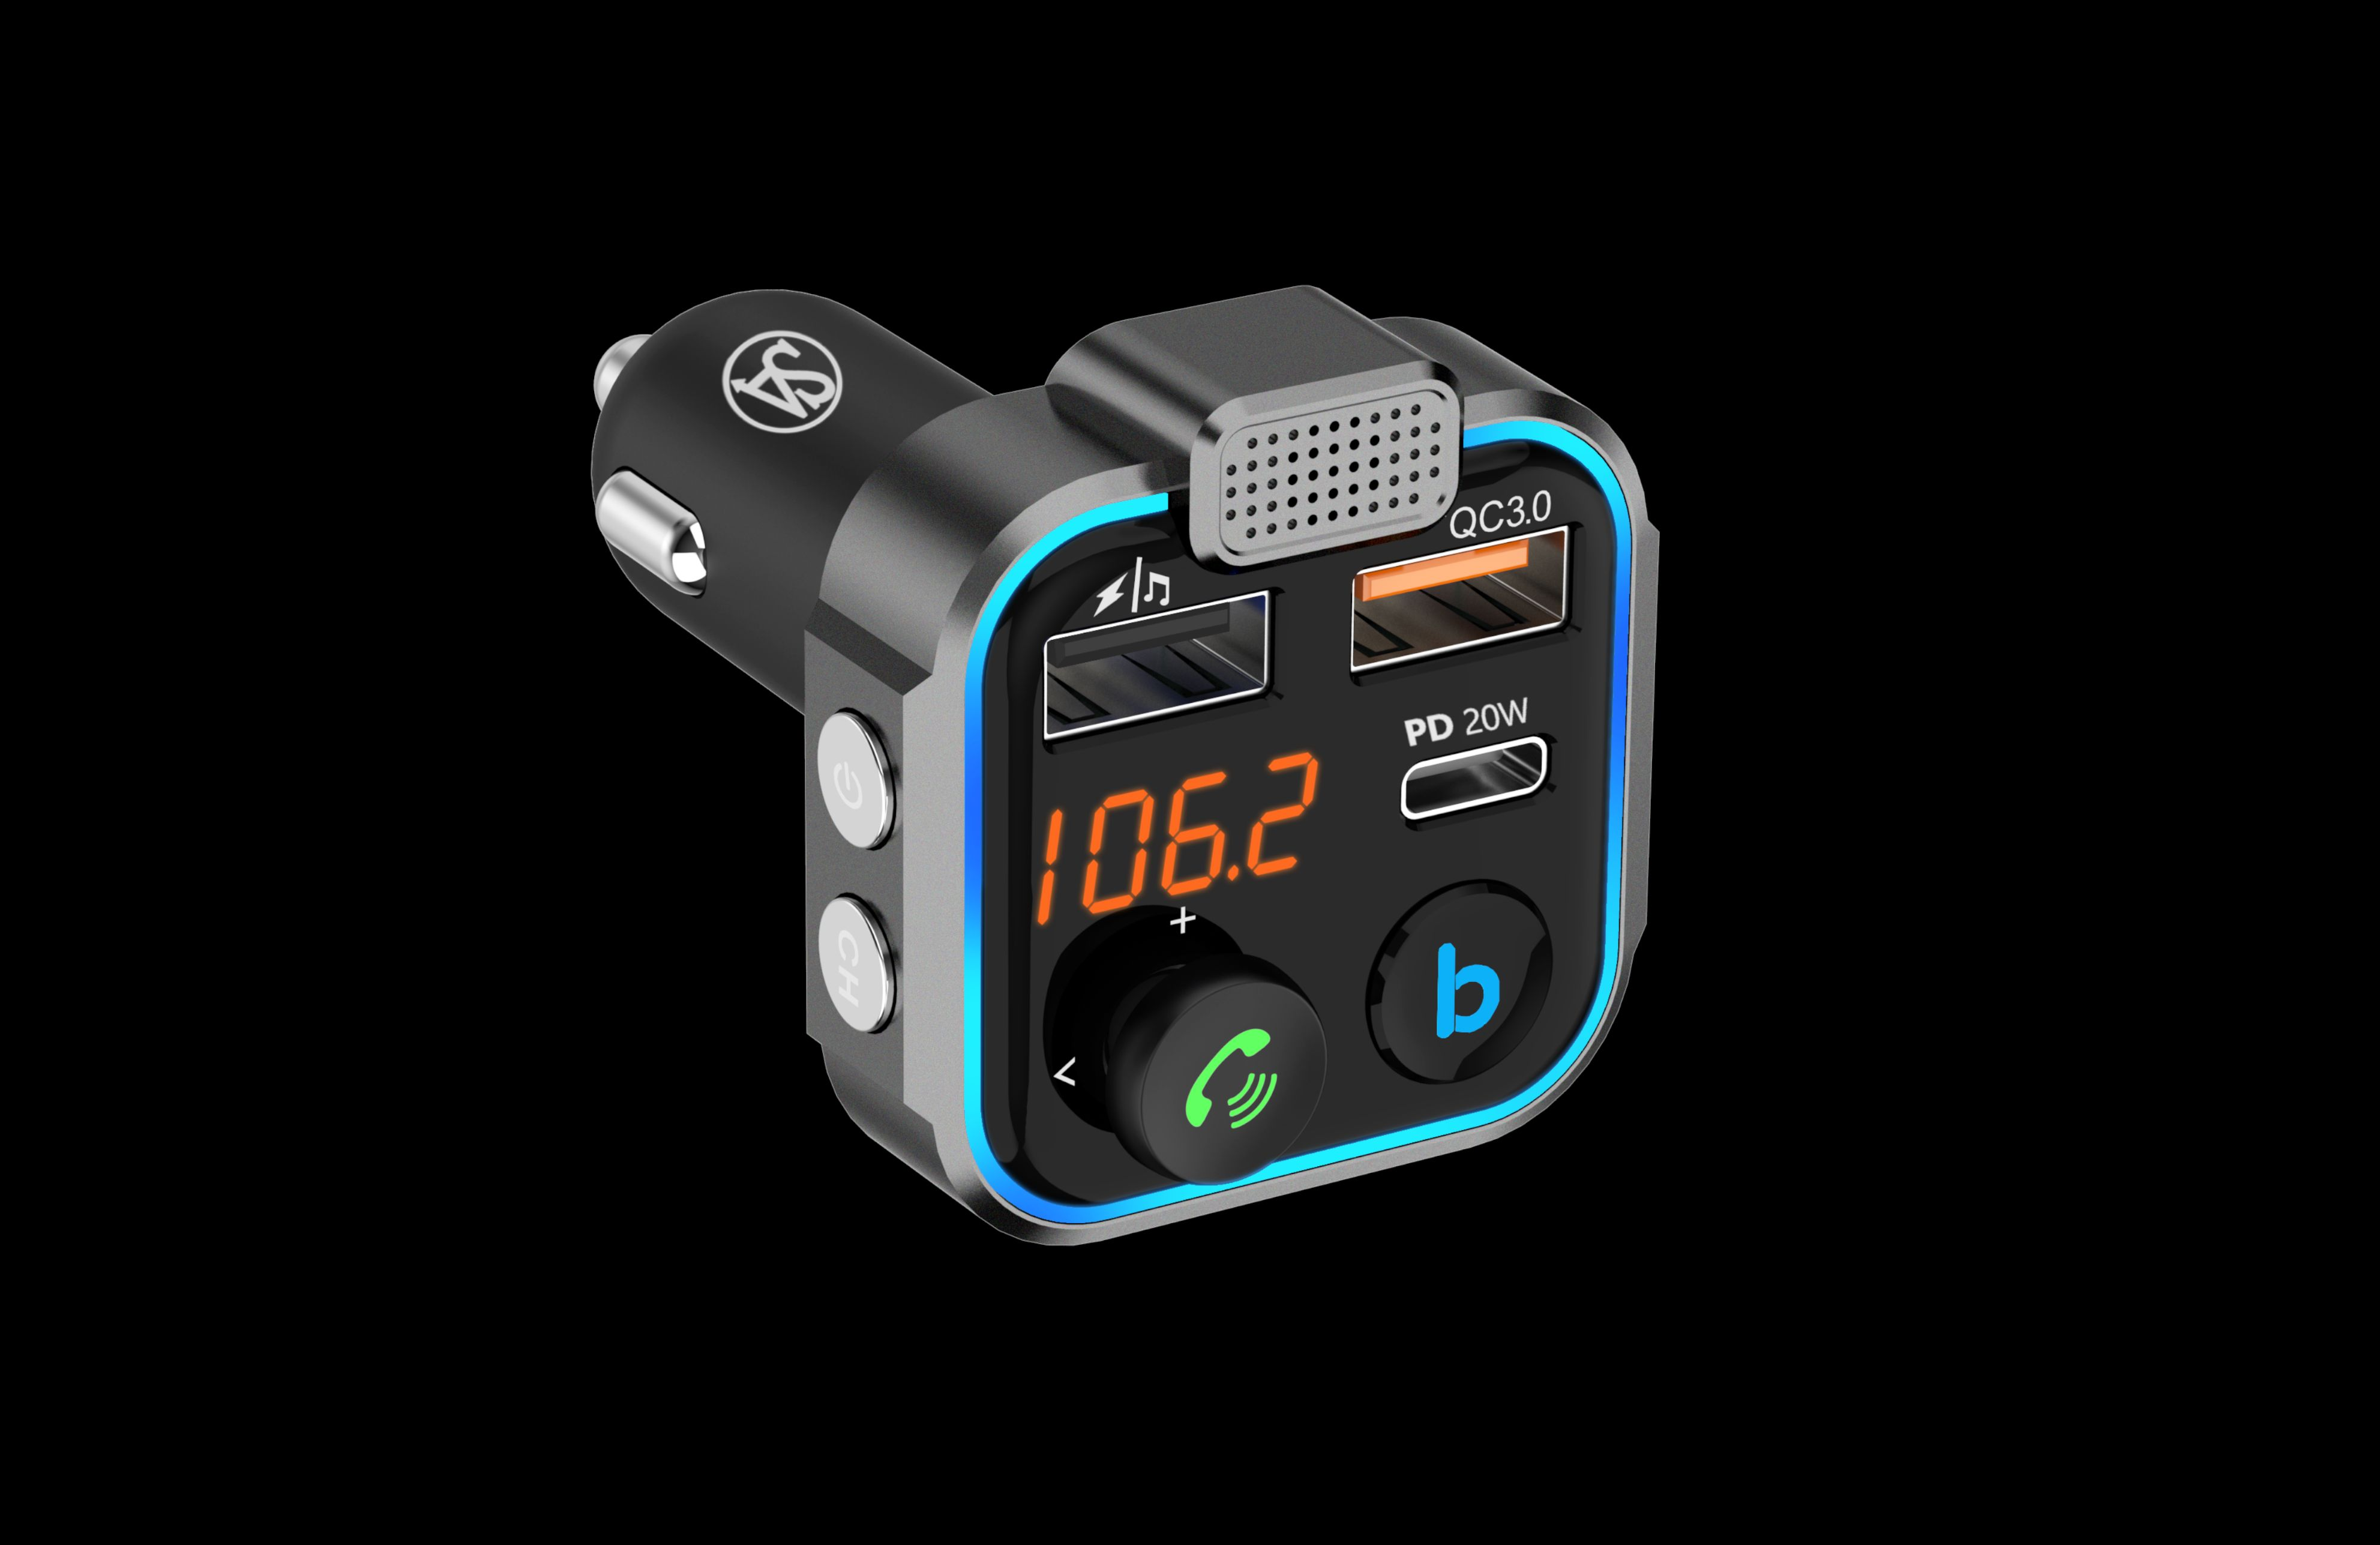 Signature Acoustics ROADRUNNER Car Bluetooth 5.0 FM Transmitter With Microphone, [QC3.0+TYPE-C PD20W] USB Port charger with MAX OUTPUT of 30W